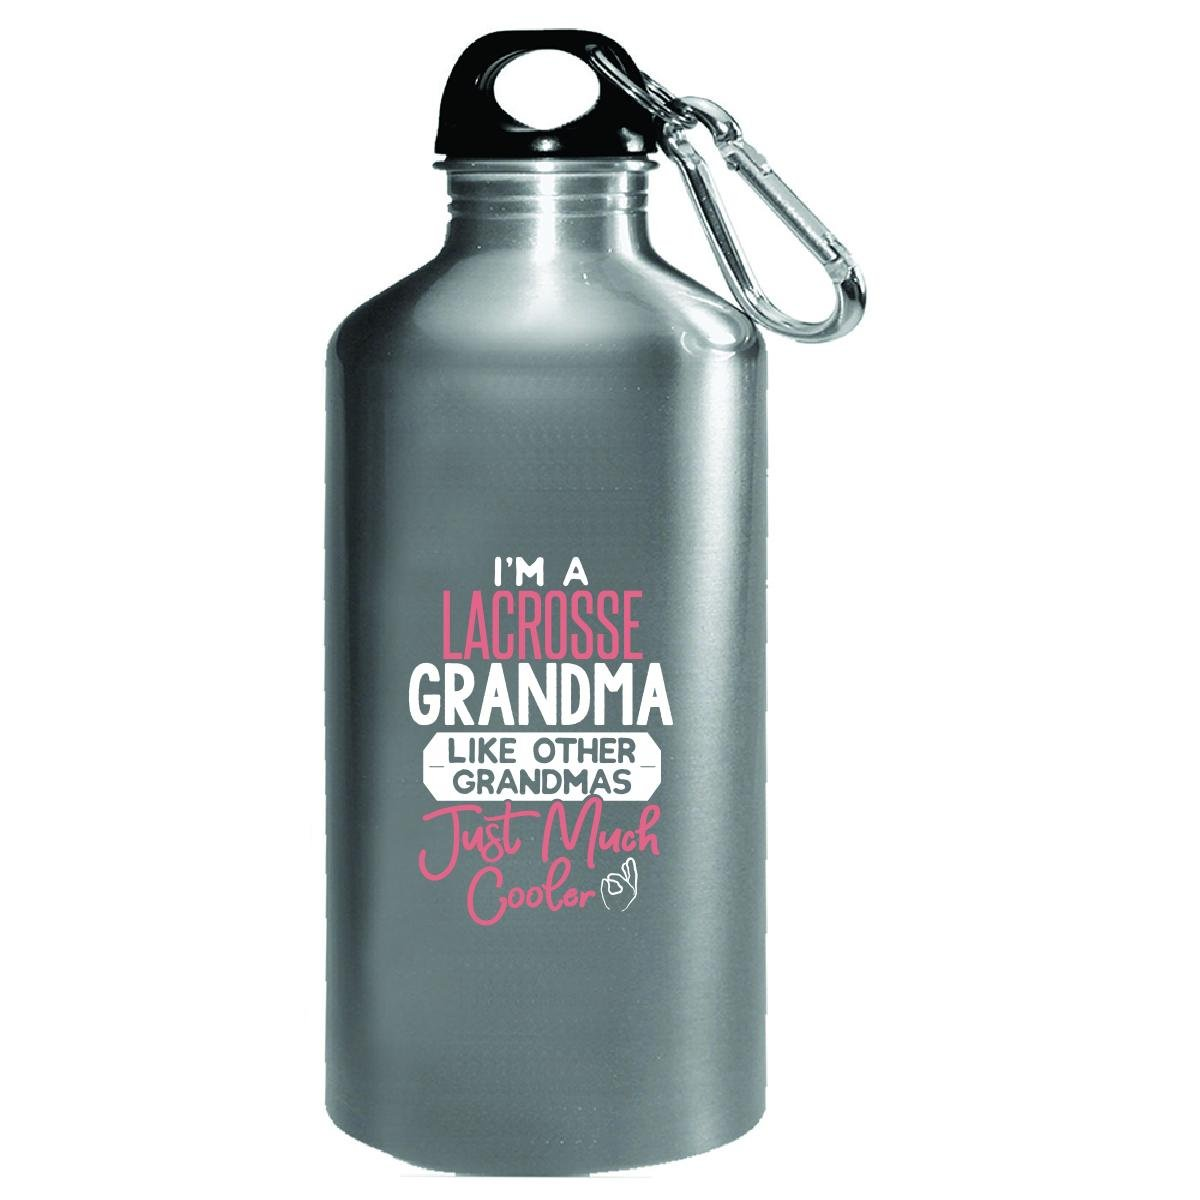 Gift Lacrosse Grandma Much Cooler Mothers Day Present - Water Bottle by My Family Tee (Image #1)